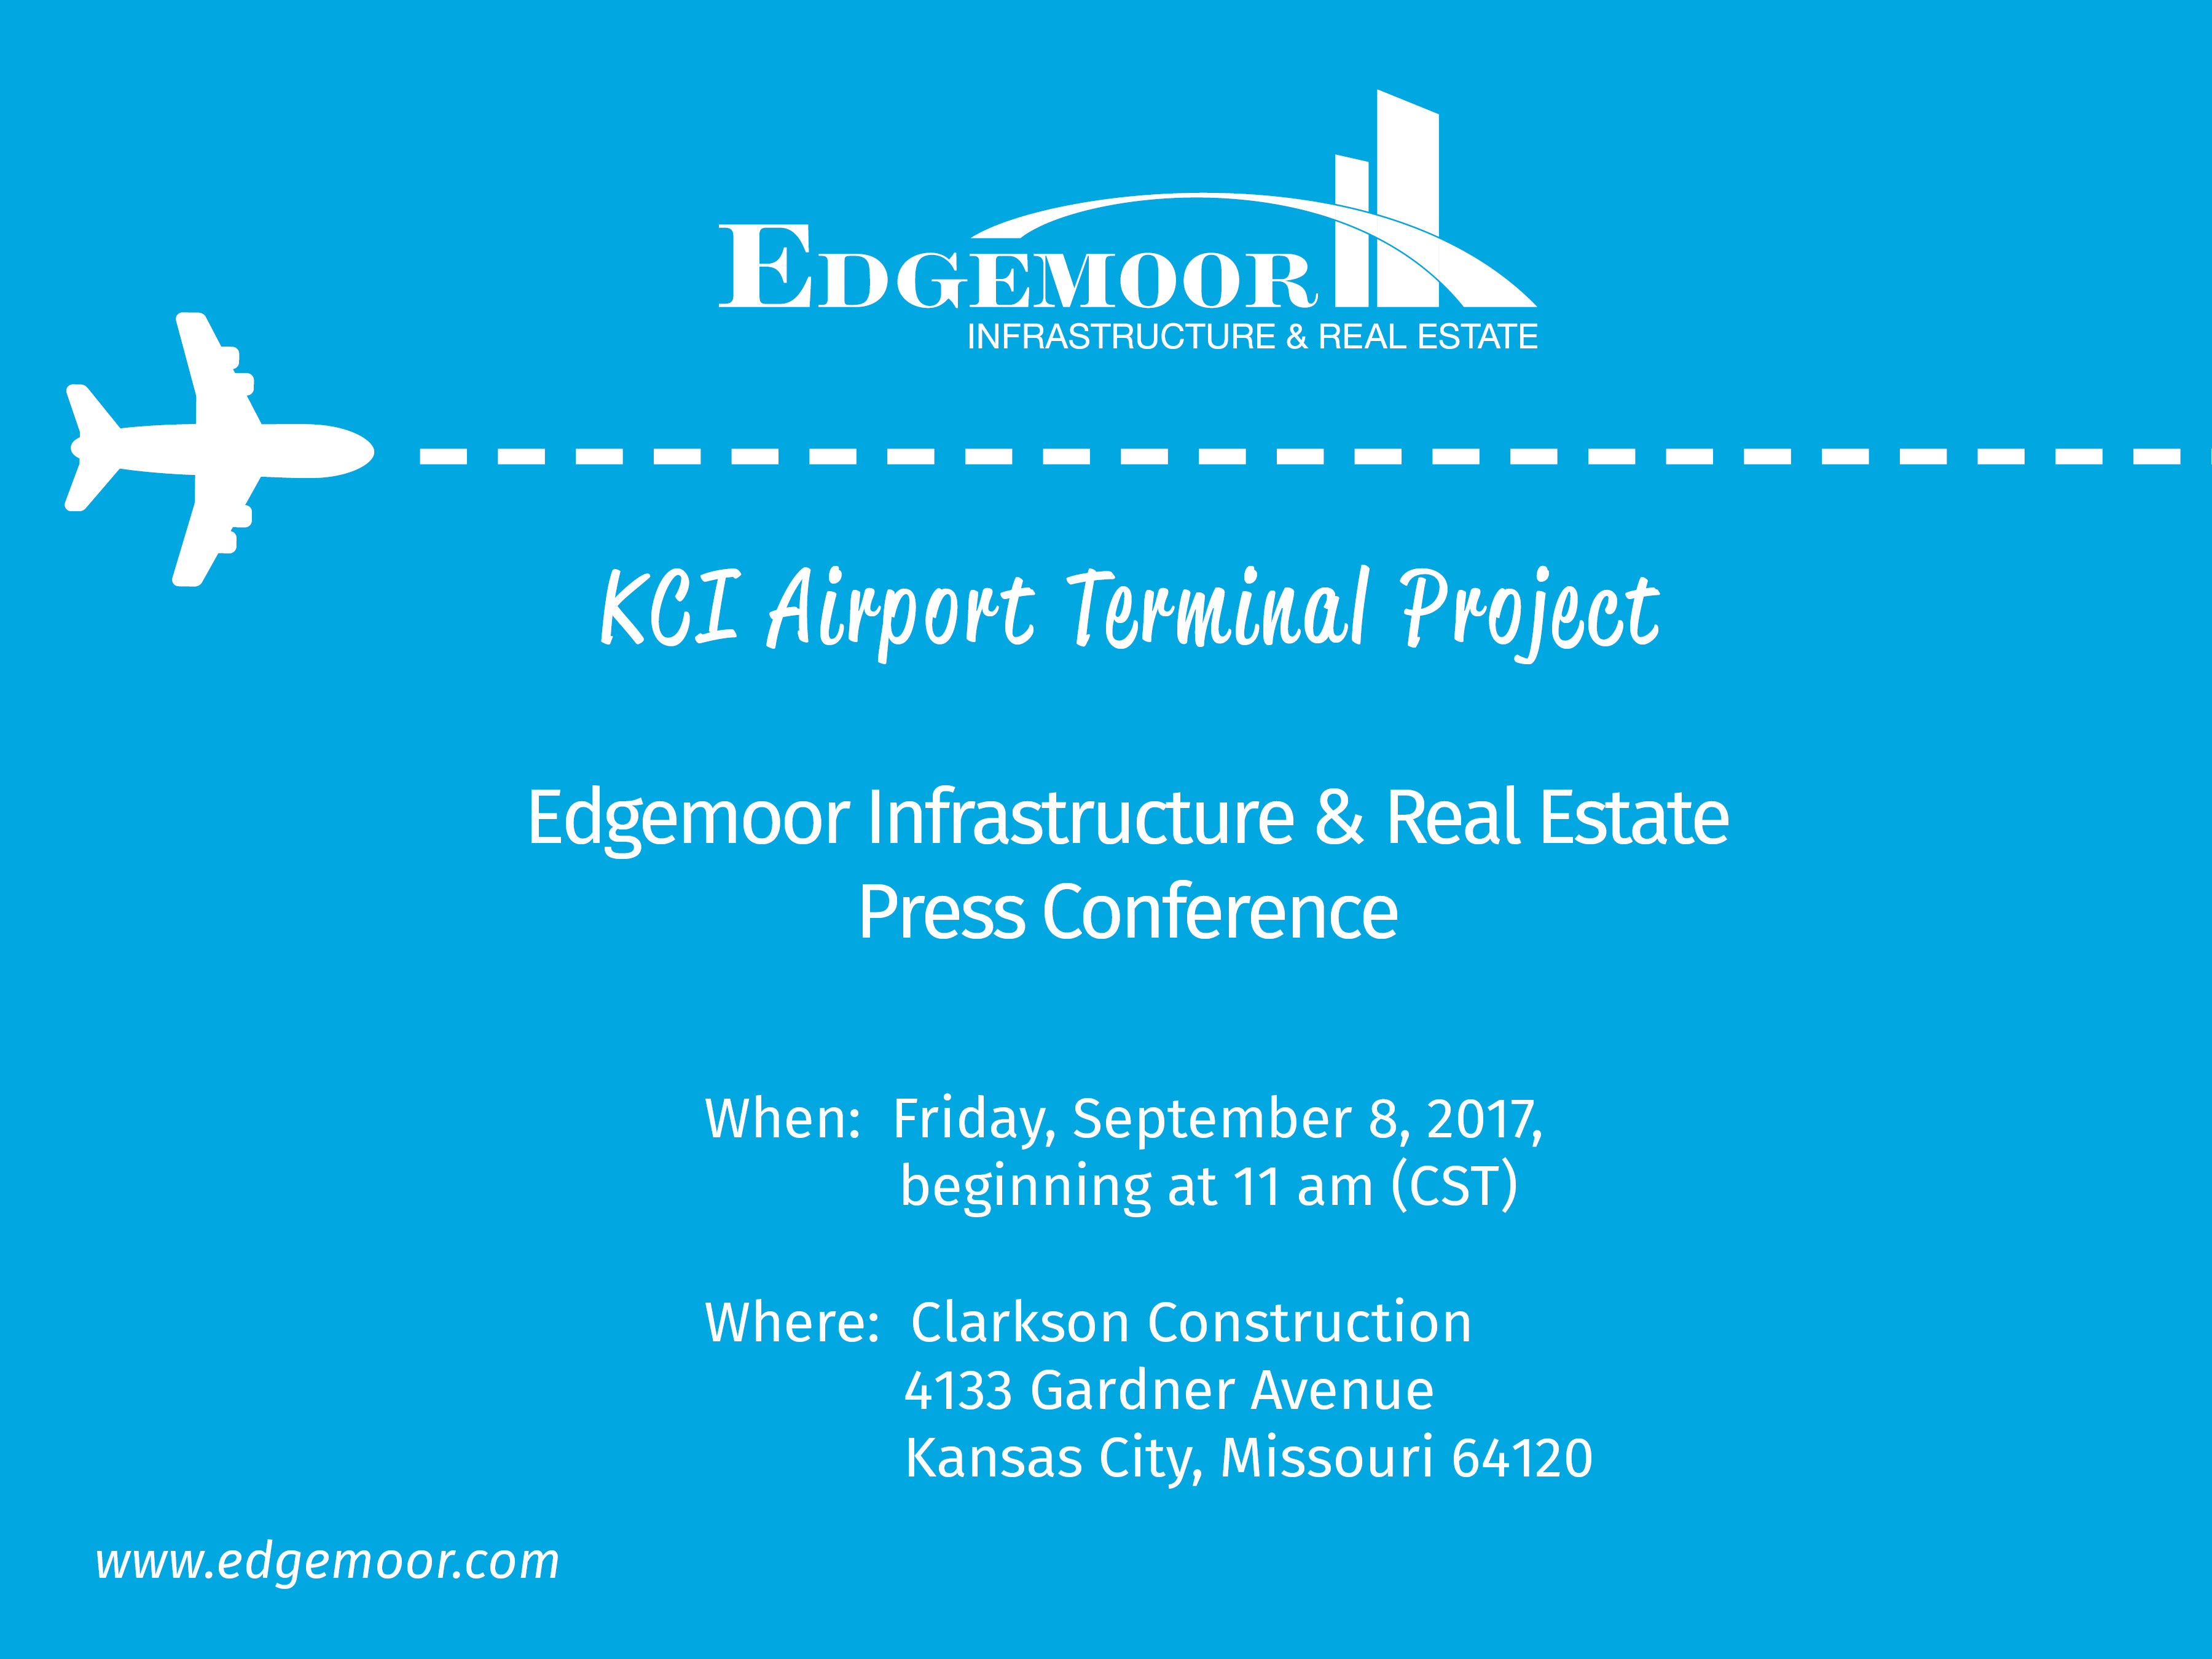 Edgemoor Infrastructure & Real Estate will be holding a KCI Terminal Project press conference on Friday, Sept. 8, 2017, beginning at 11 am (CST)